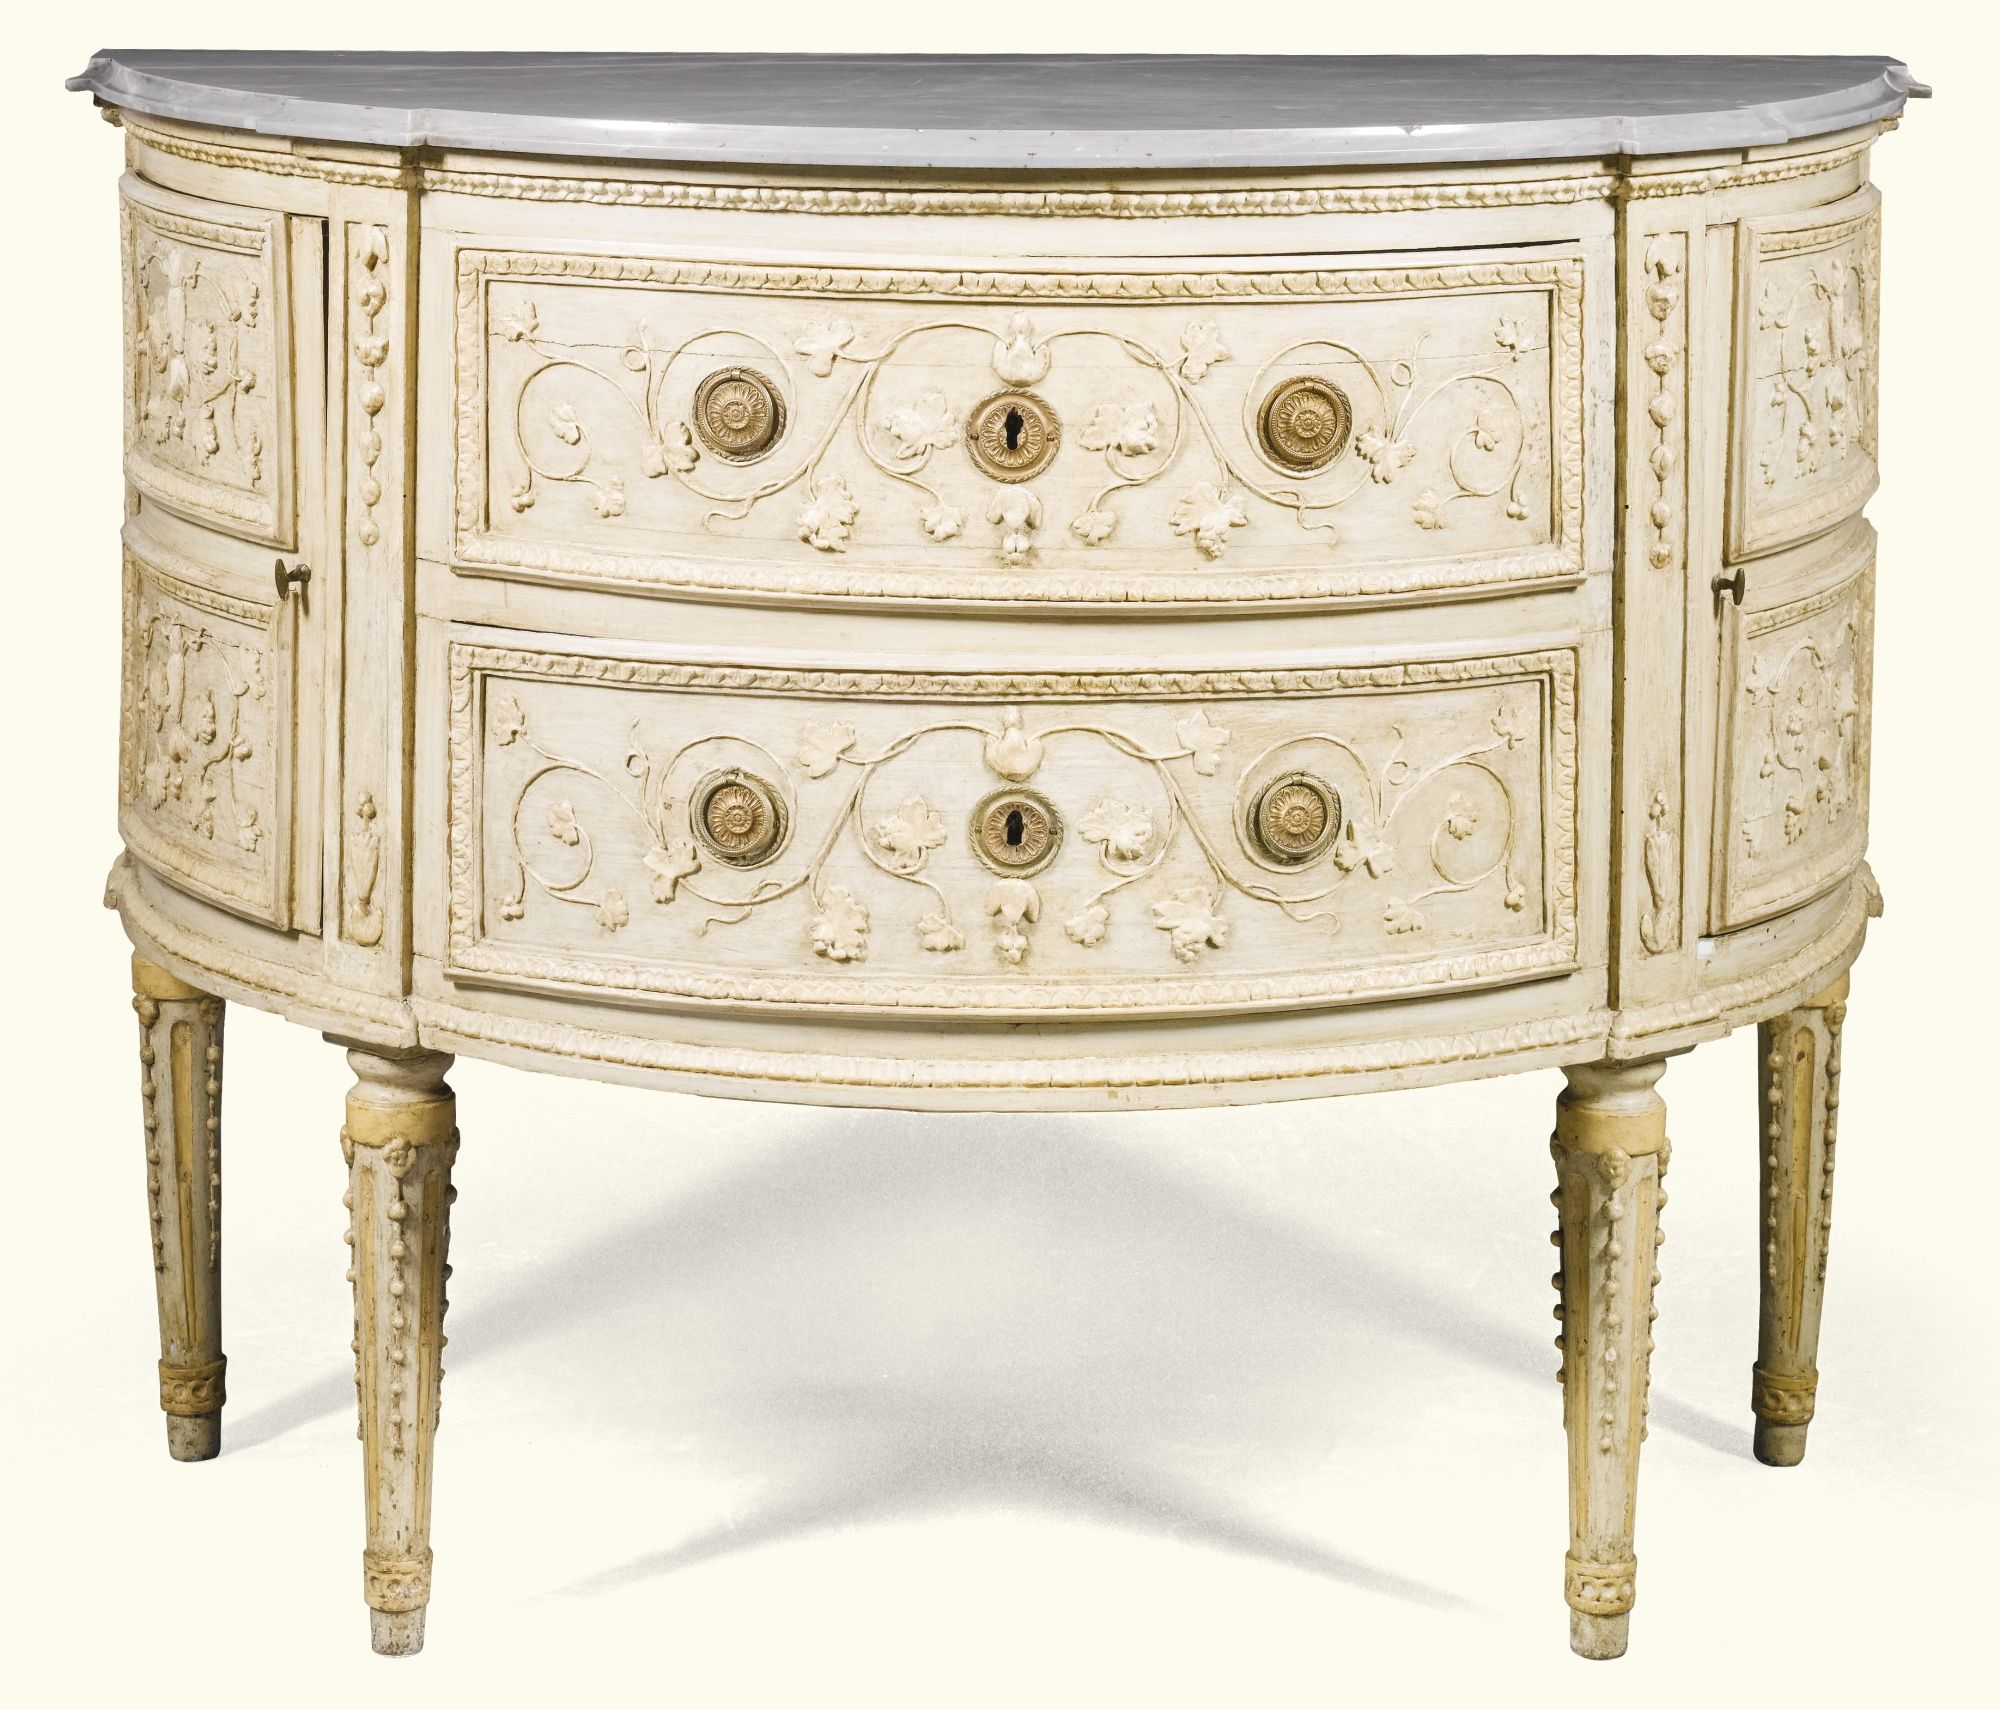 An Italian cream and ivory painted demi-lune commode, Piedmontese, late 18th century with a moulded bleu turquin marble top above two drawers carved with scrolling foliage flanked by cupboard doors, the stiles with trails of husks on fluted and beaded tapering legs terminating in toupie feet;.